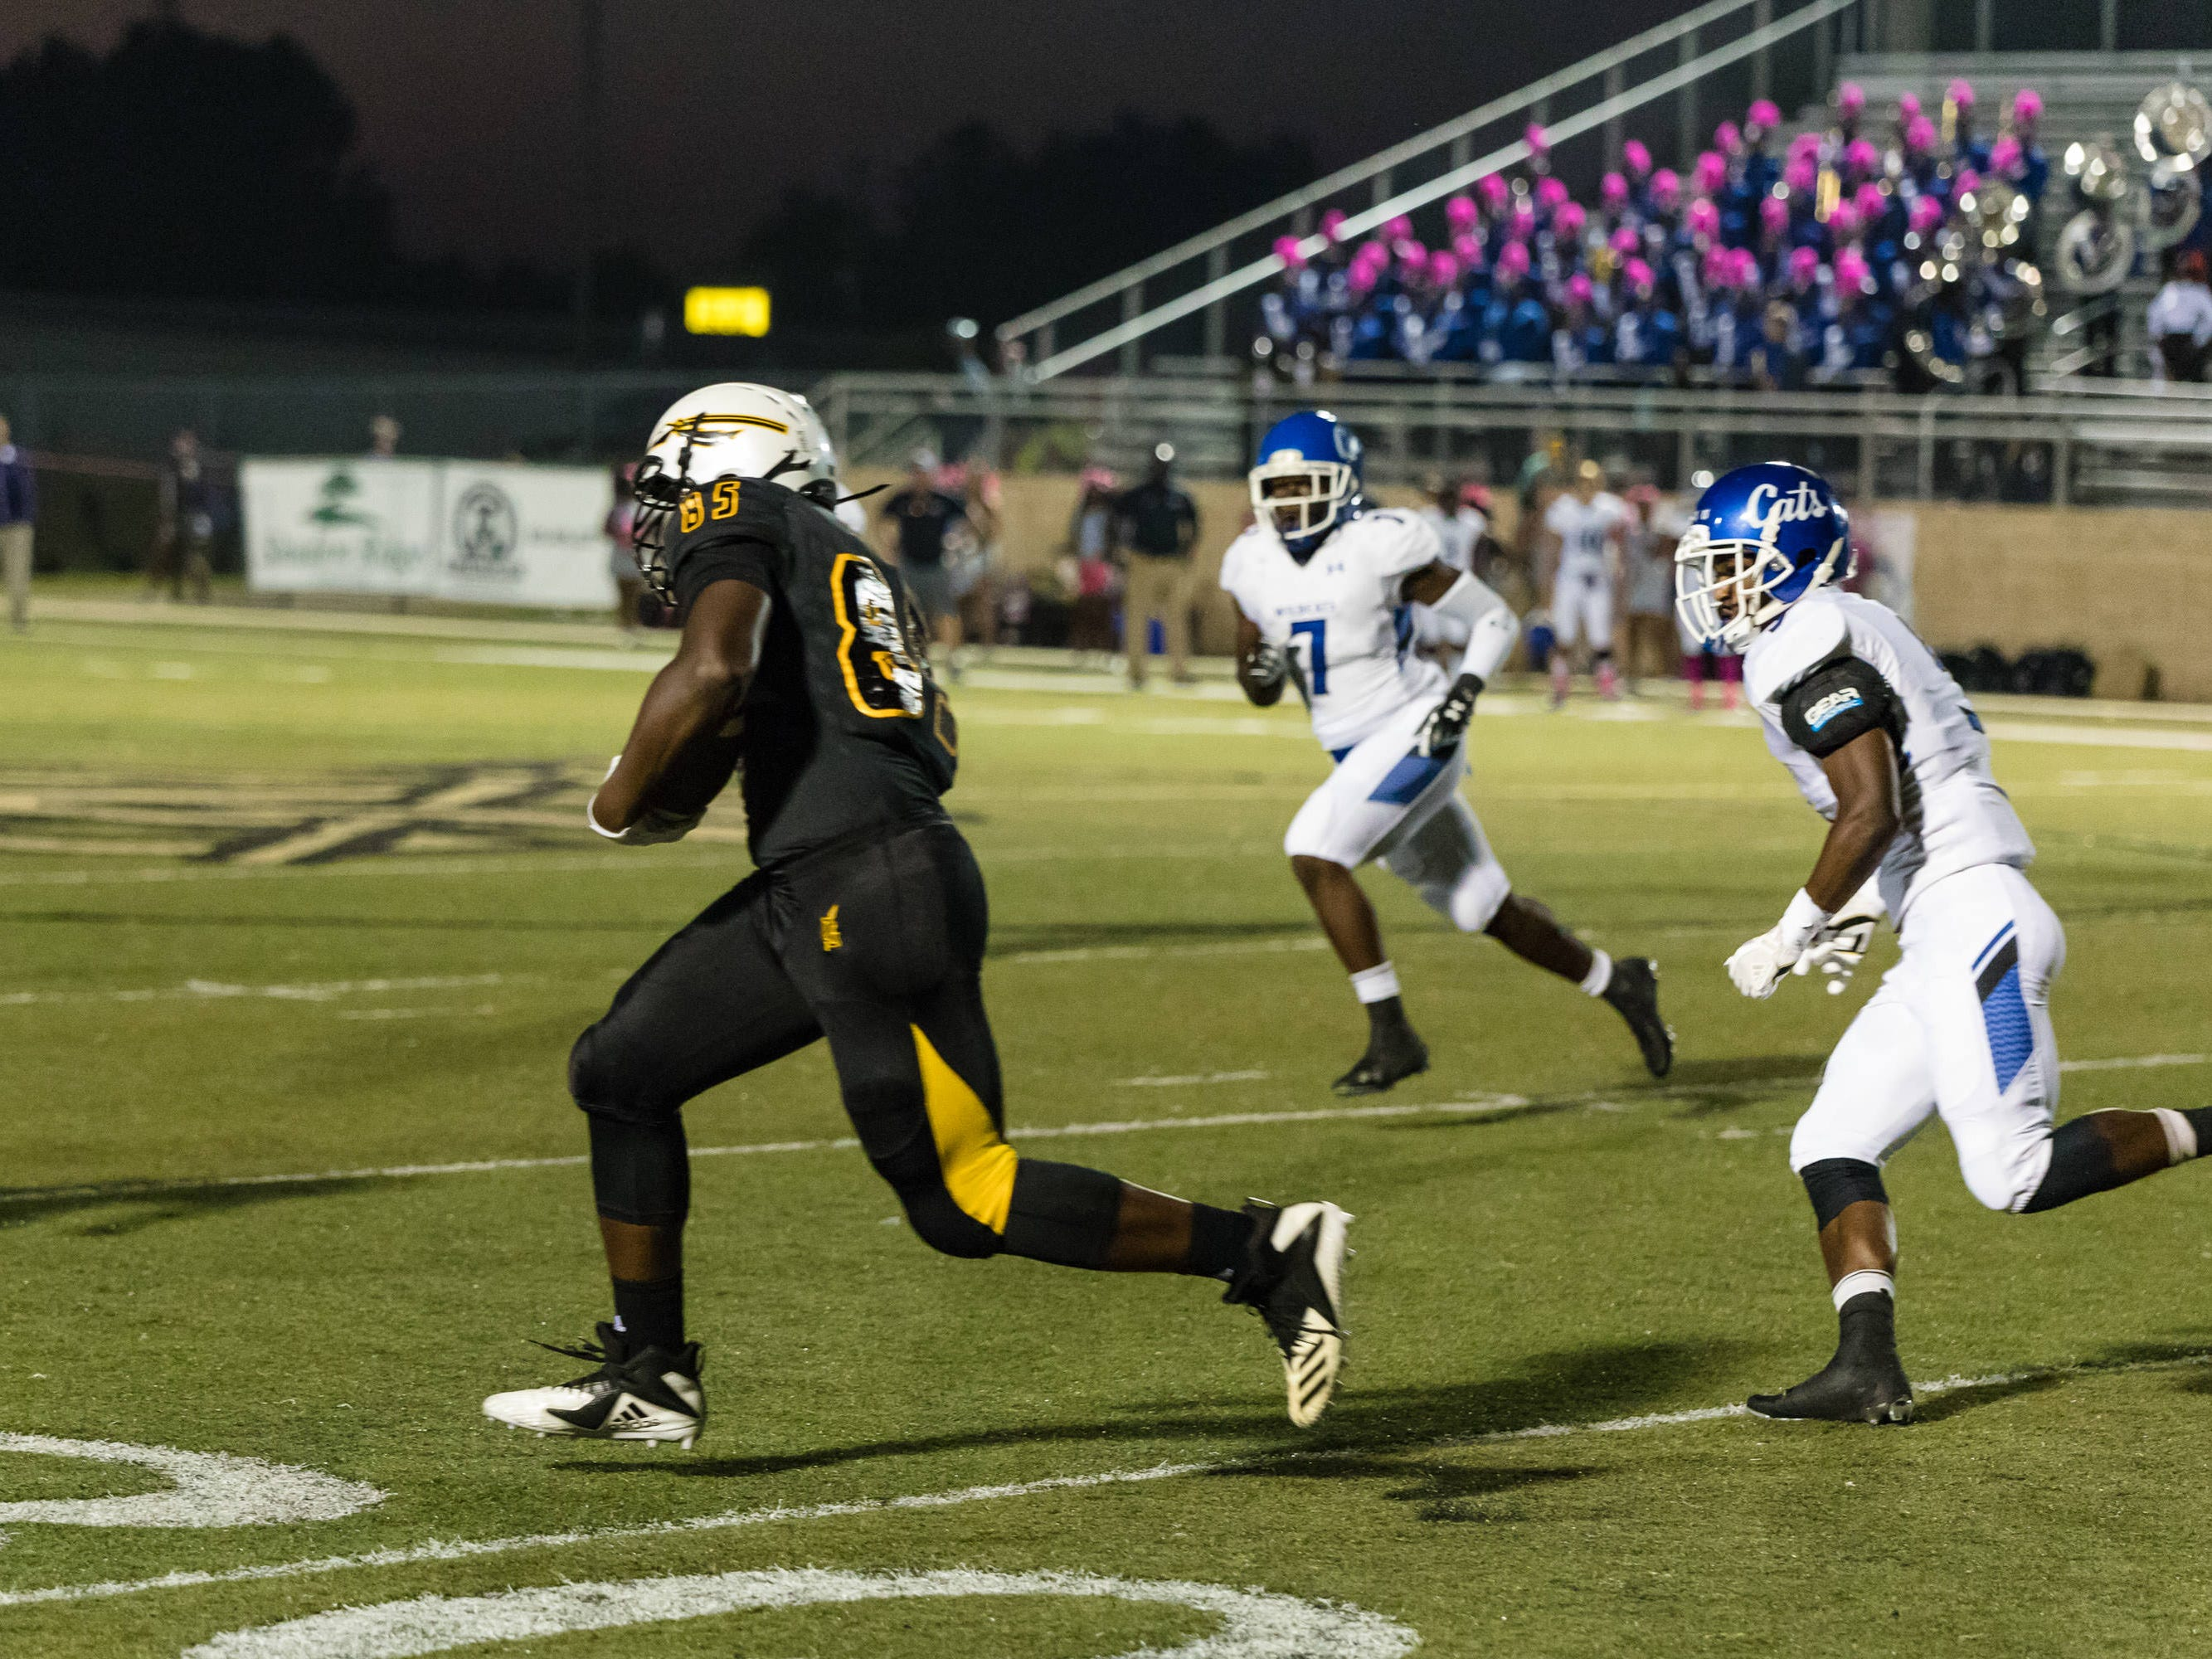 Rasaiah Ruffin (#85) races downfield while pursued by Meridian Wildcats.